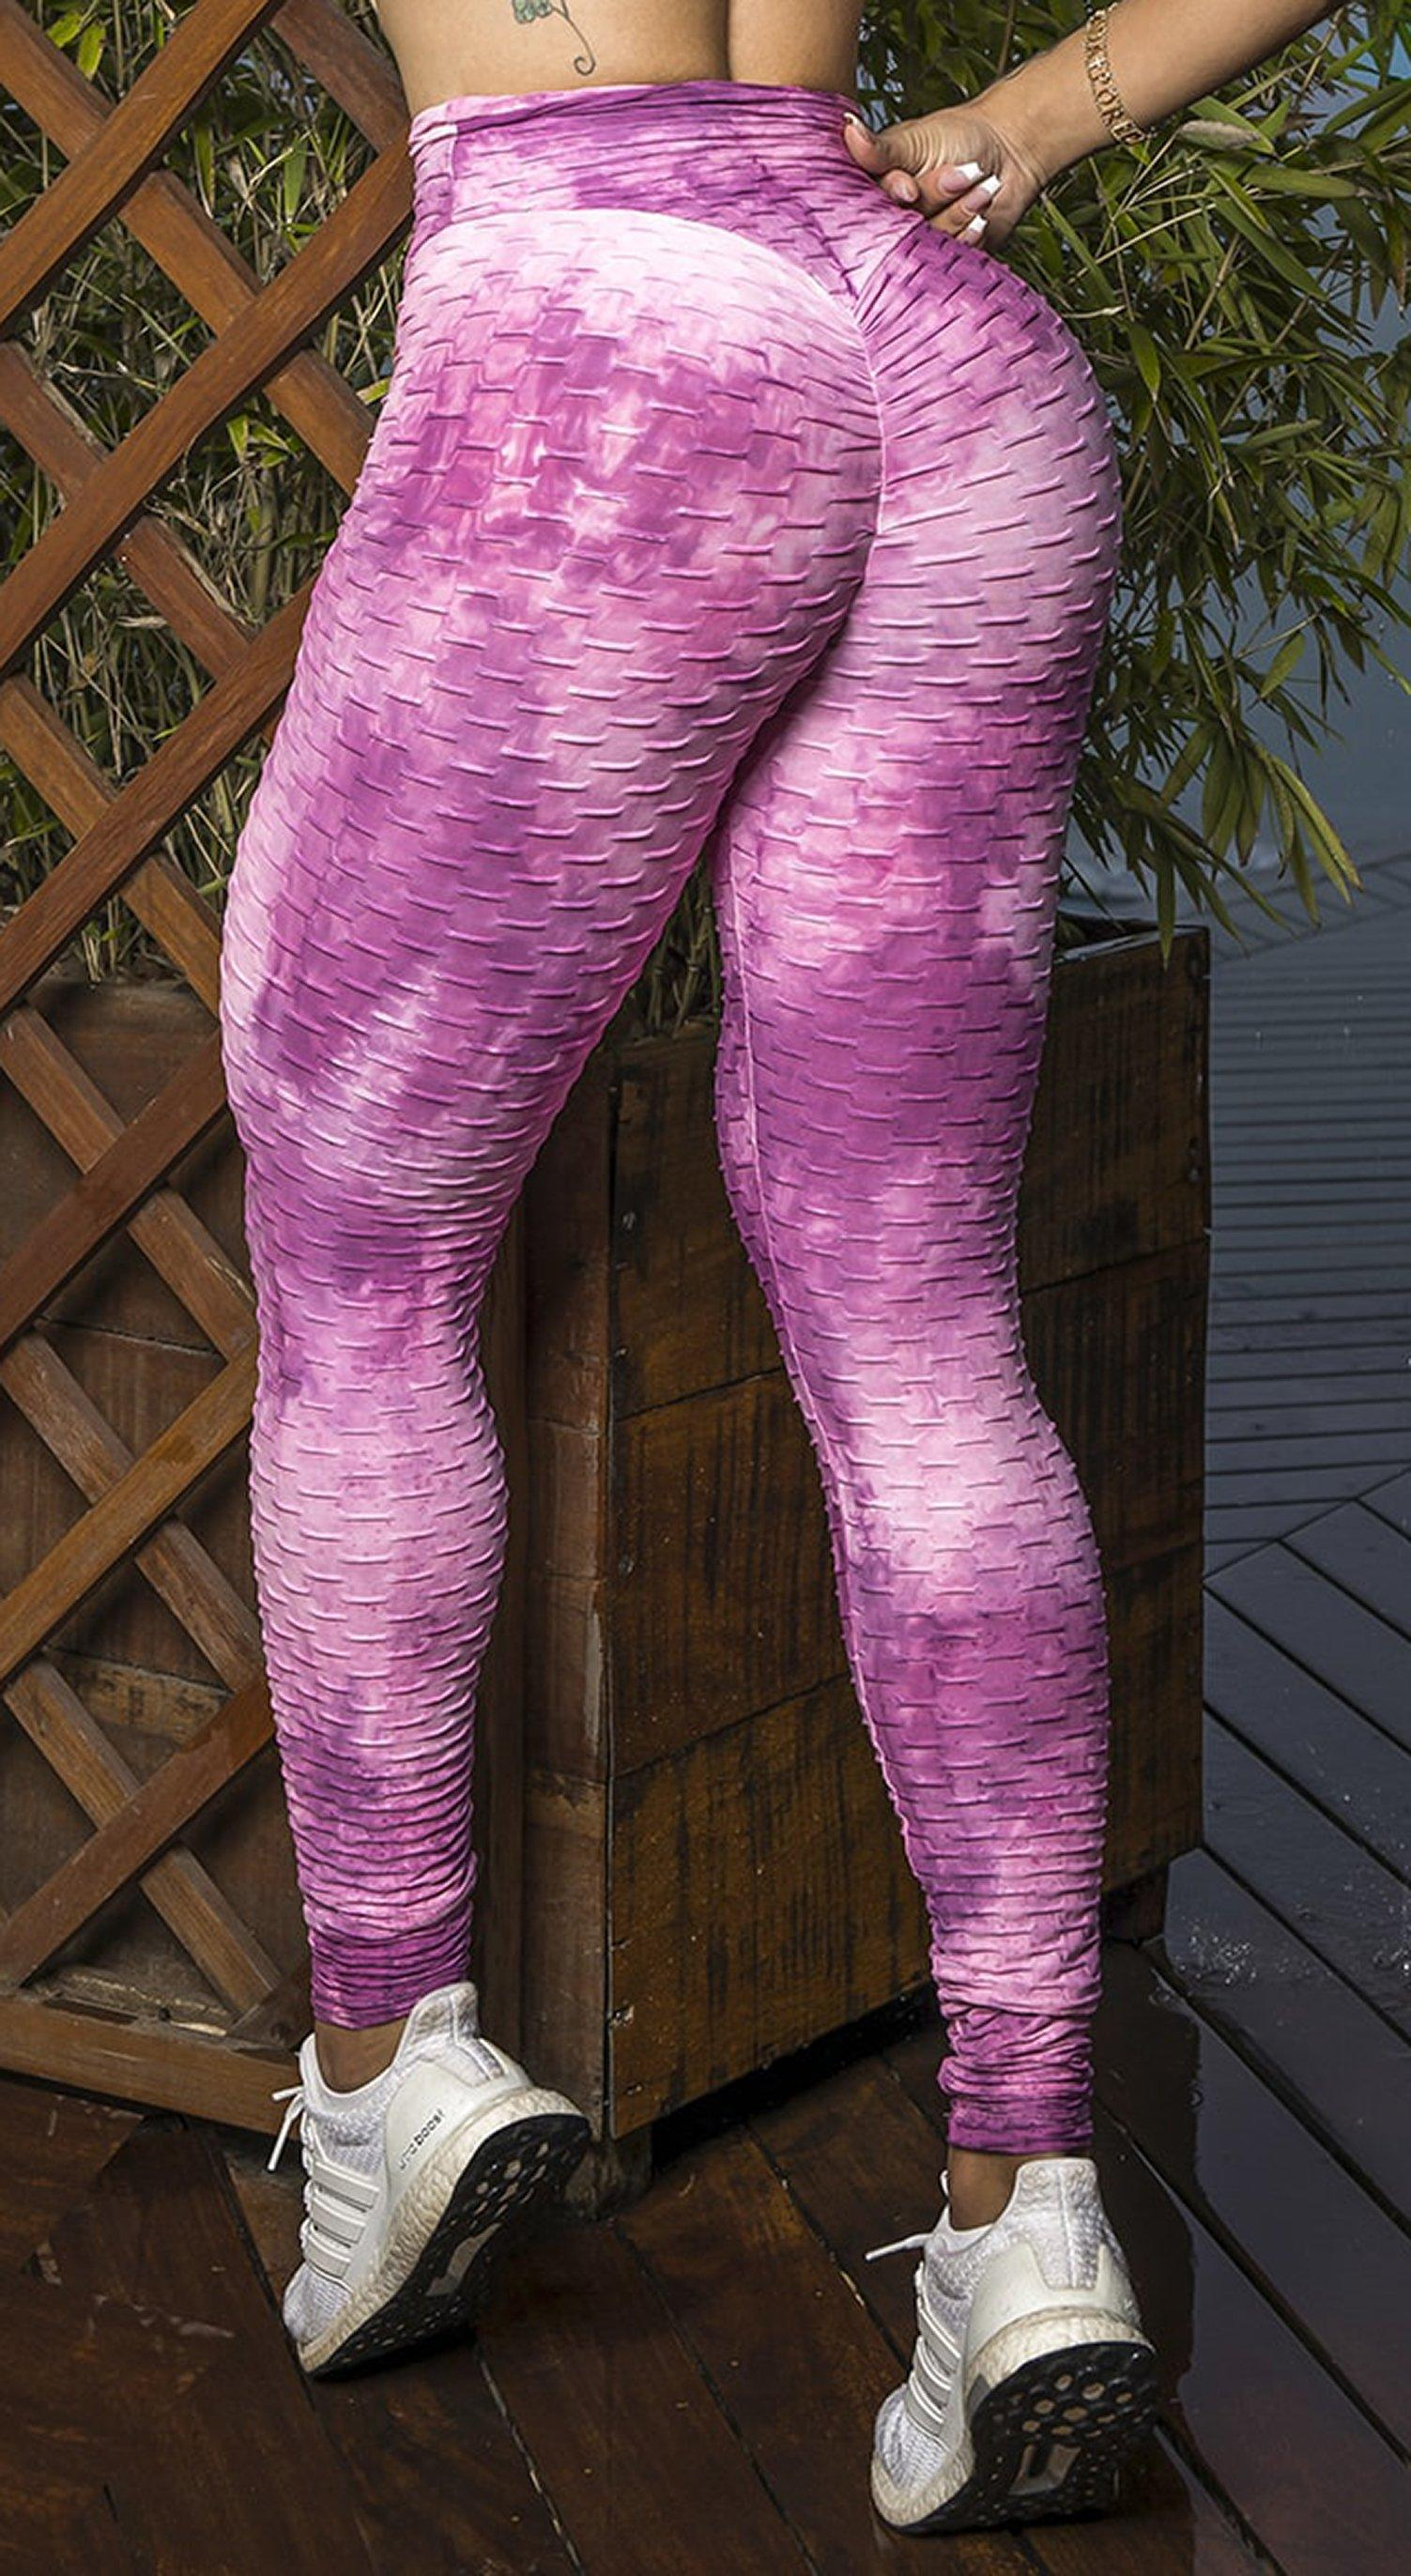 Brazilian Legging - High Waist Anti Cellulite Textured Scrunch Booty Tie Dye Pink & White